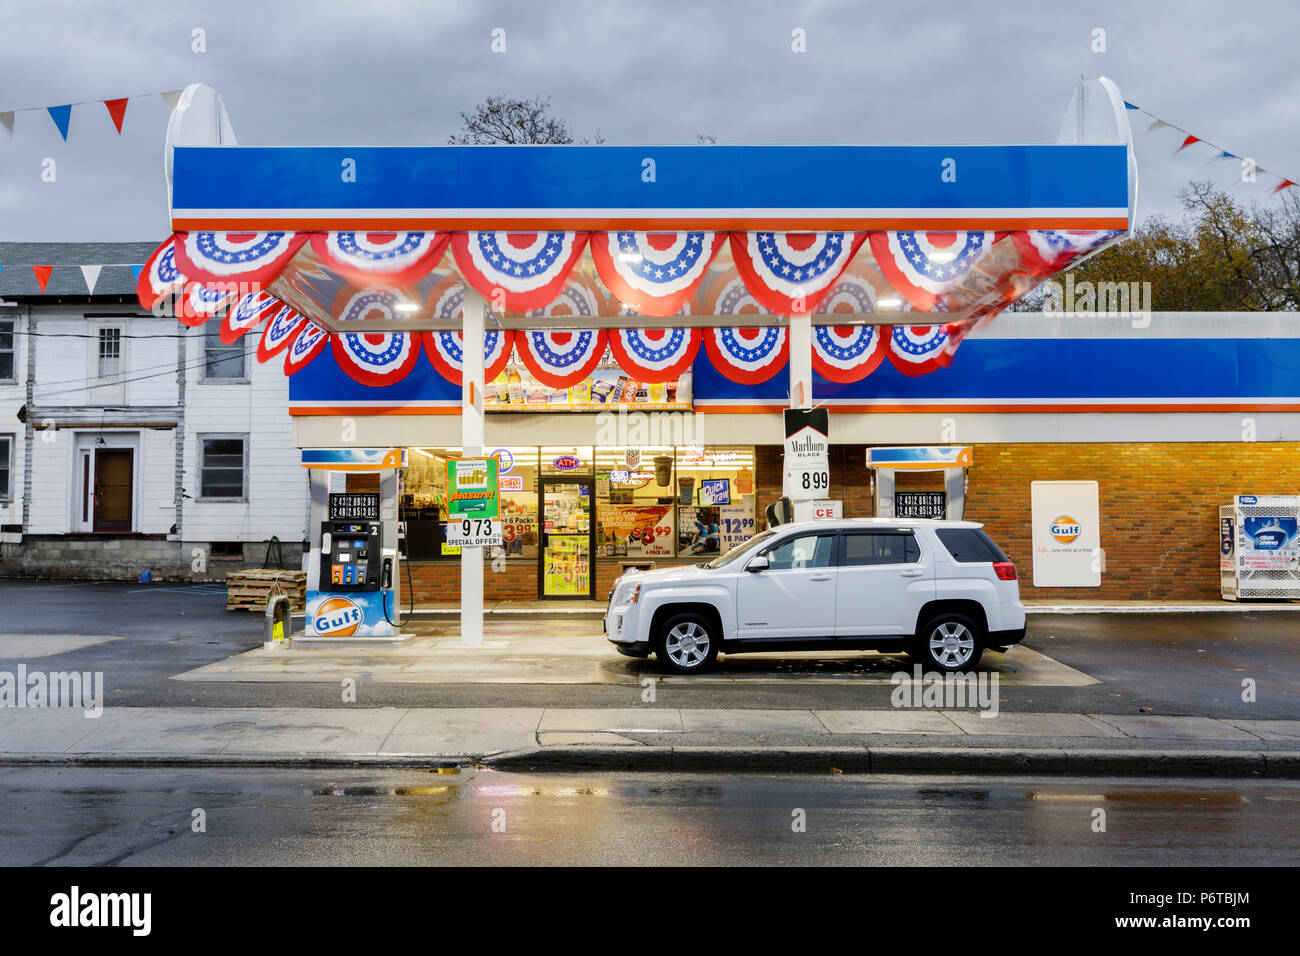 Palatine Bridge, New York, USA: A Gulf gas station at a Cumberland Farms convenience store, spruced up with bunting for a reopening. - Stock Image